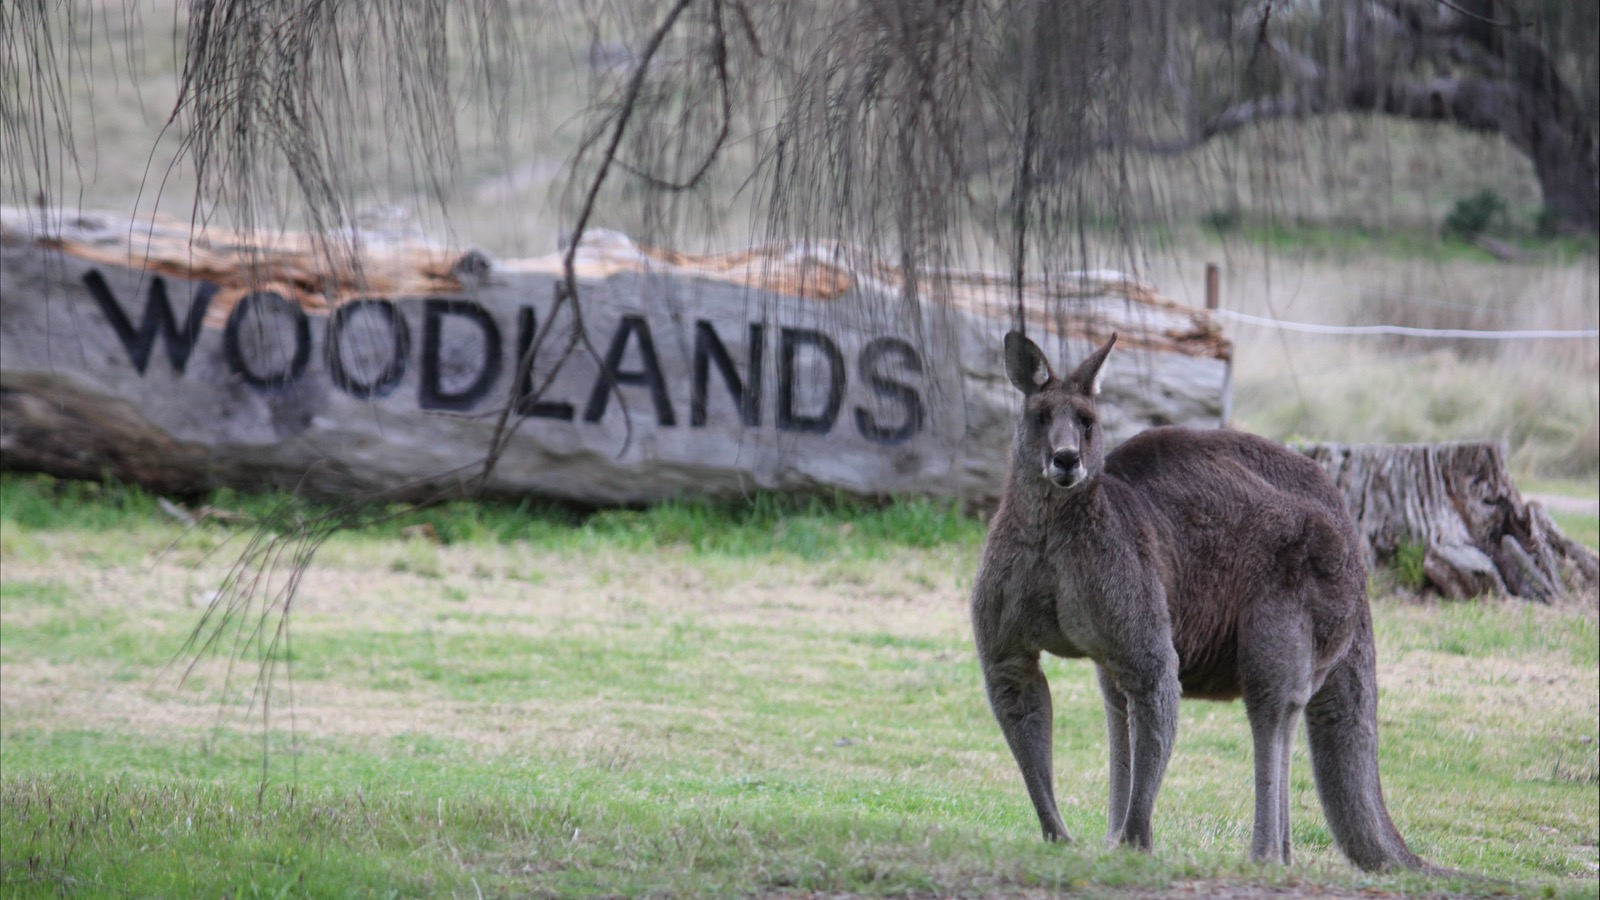 Kangaroo at Living Legends - Woodlands